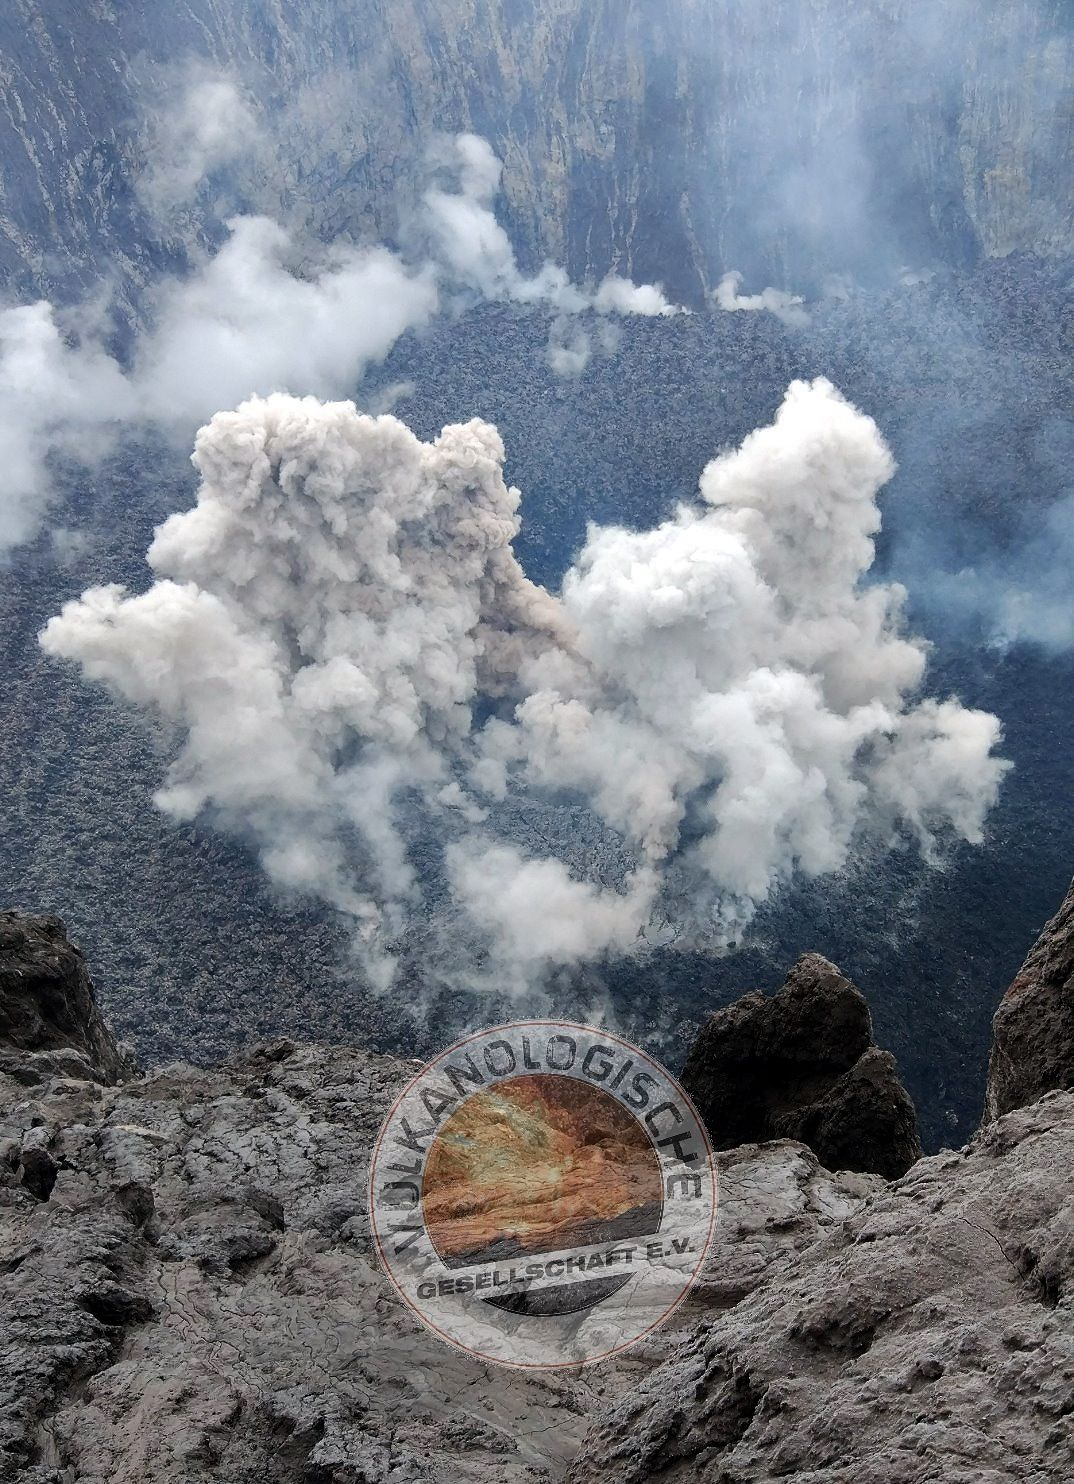 A first photo of the interior of the crater of Agung was put online by our German colleague Marc Szeglat of Vulkane Net Newsblog.